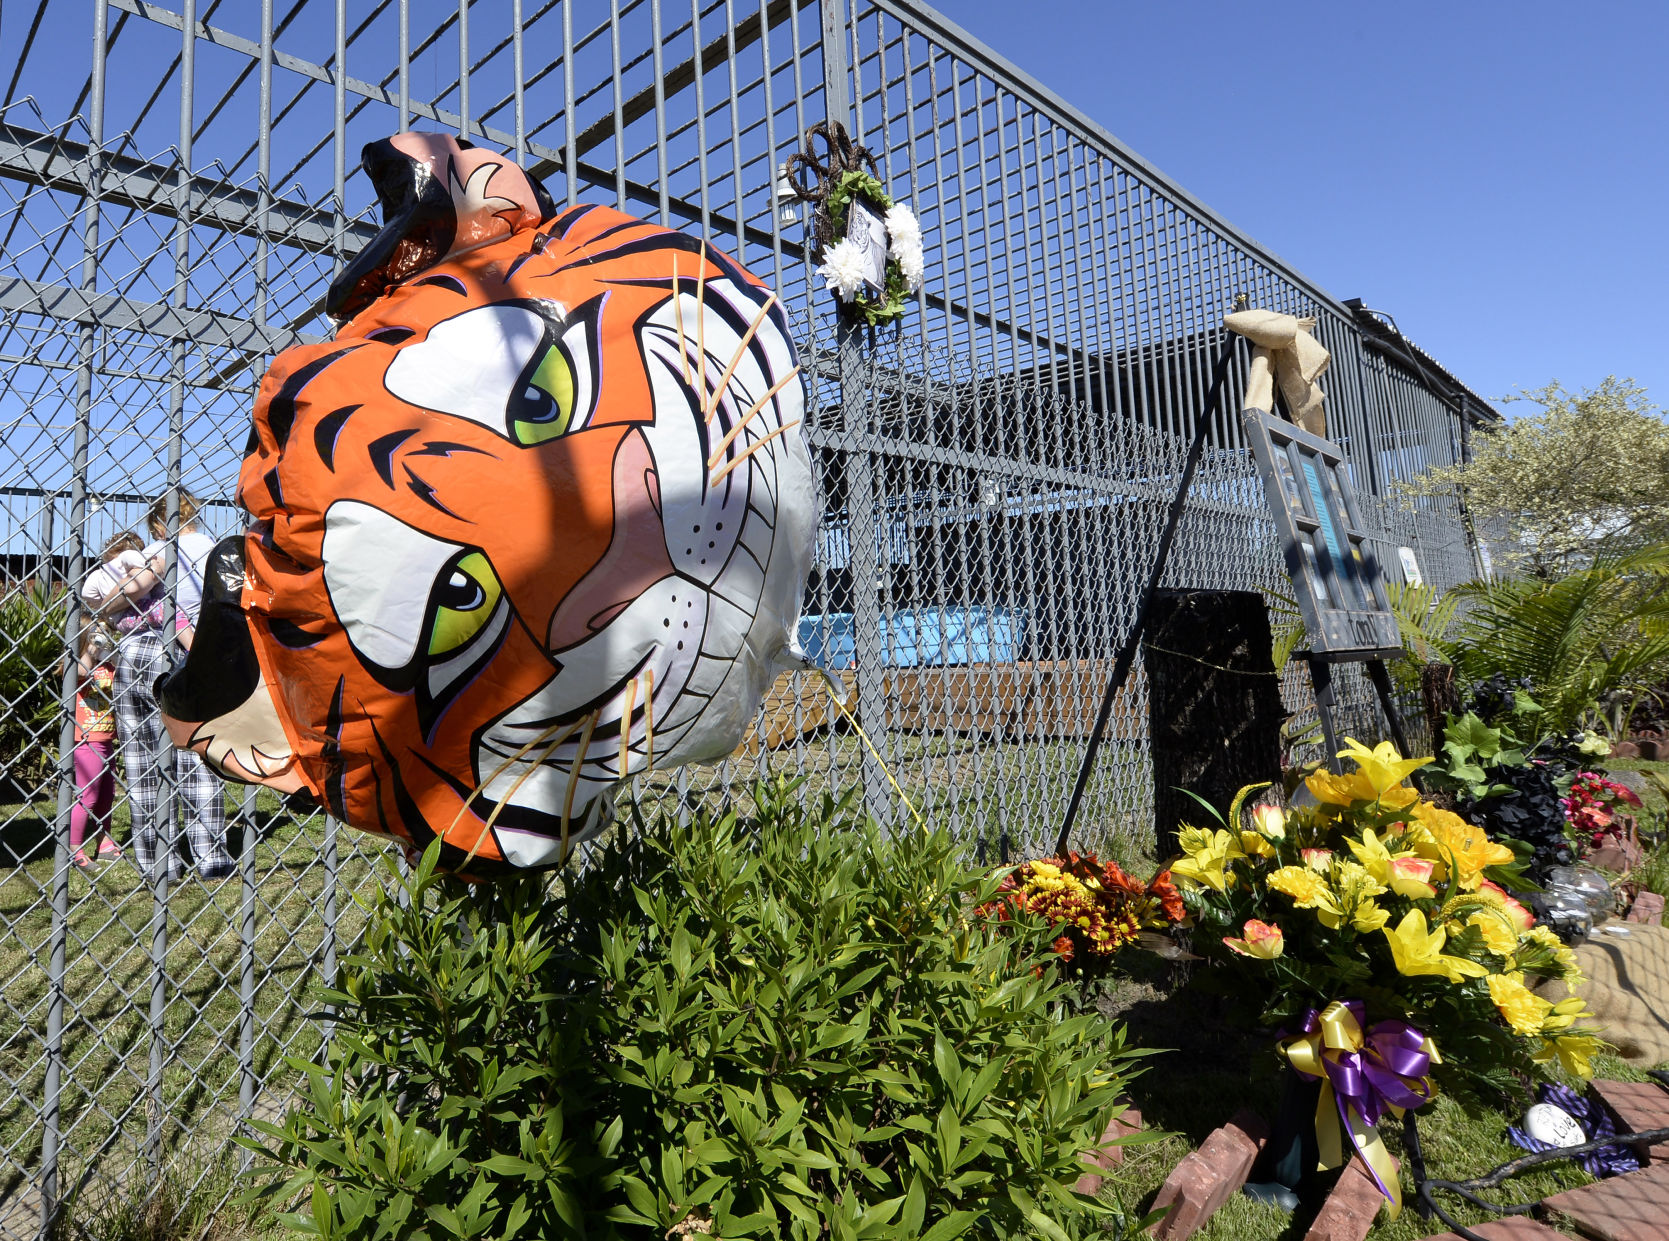 Truck Stop Owner Plans To Pursue Another Tiger Stuff Tony For Display Critic Calls That Disrespectful Westside Theadvocate Com